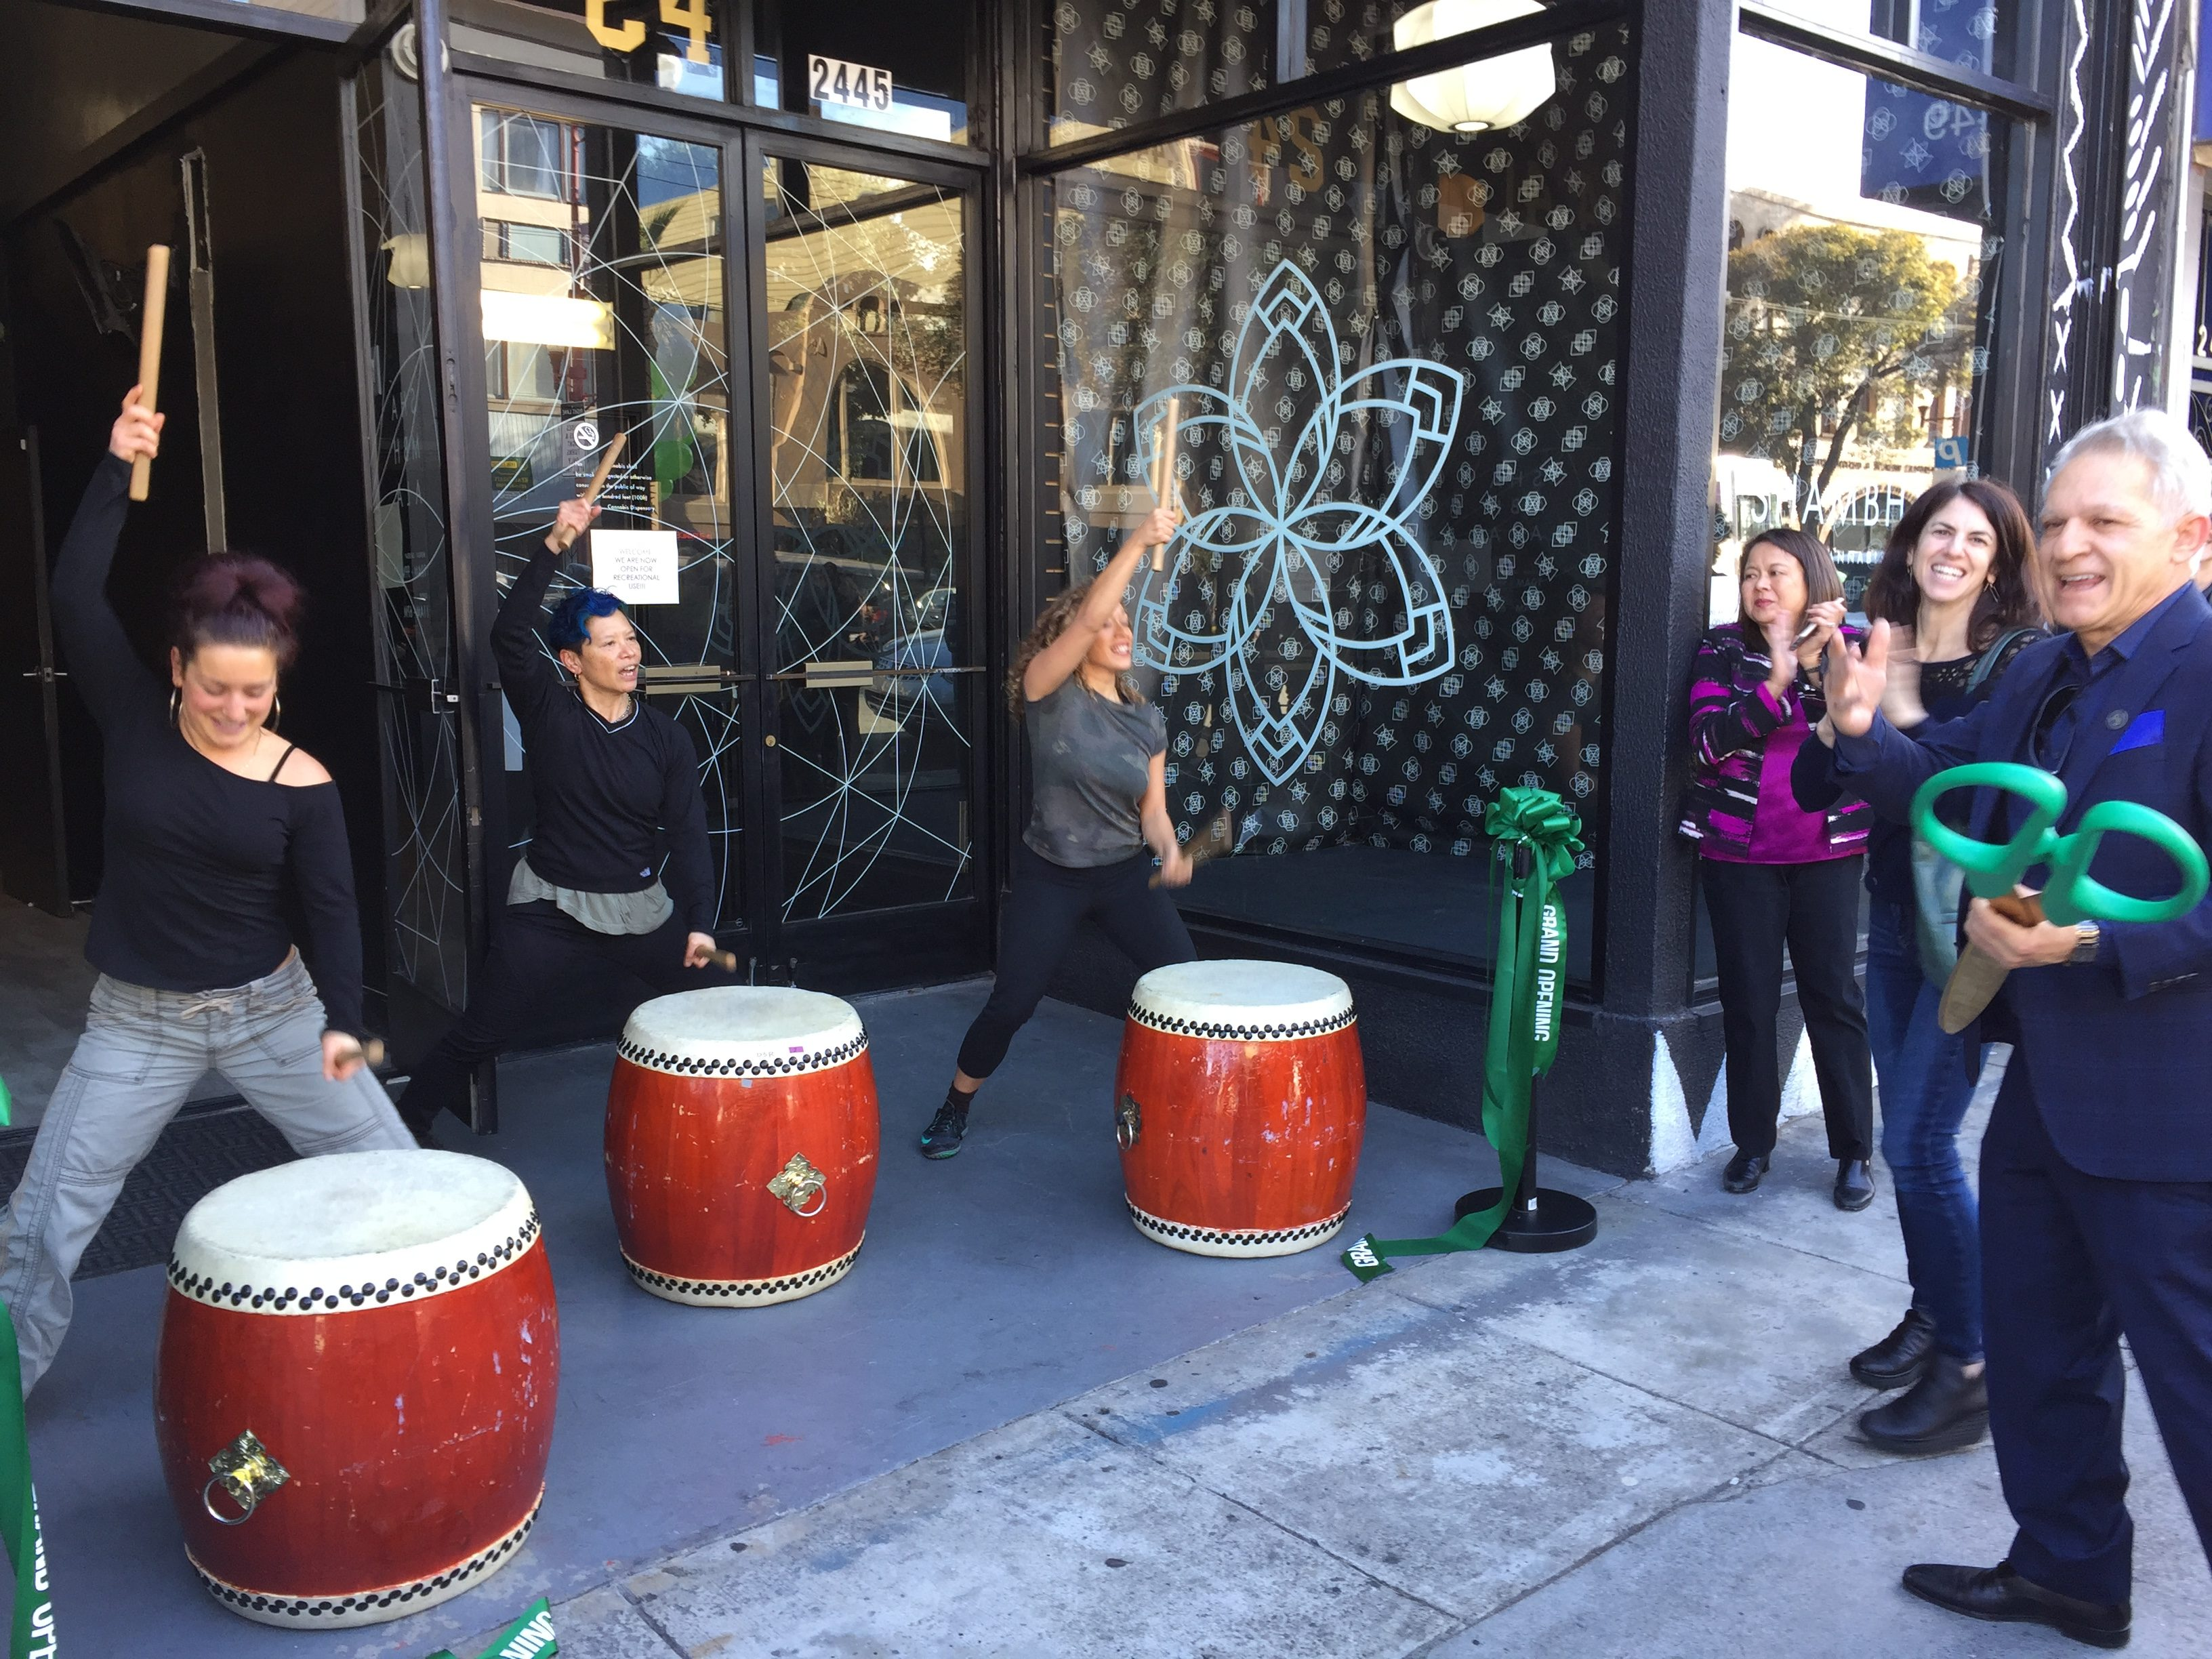 SF Mission's Shambhala reopens as recreational pot store